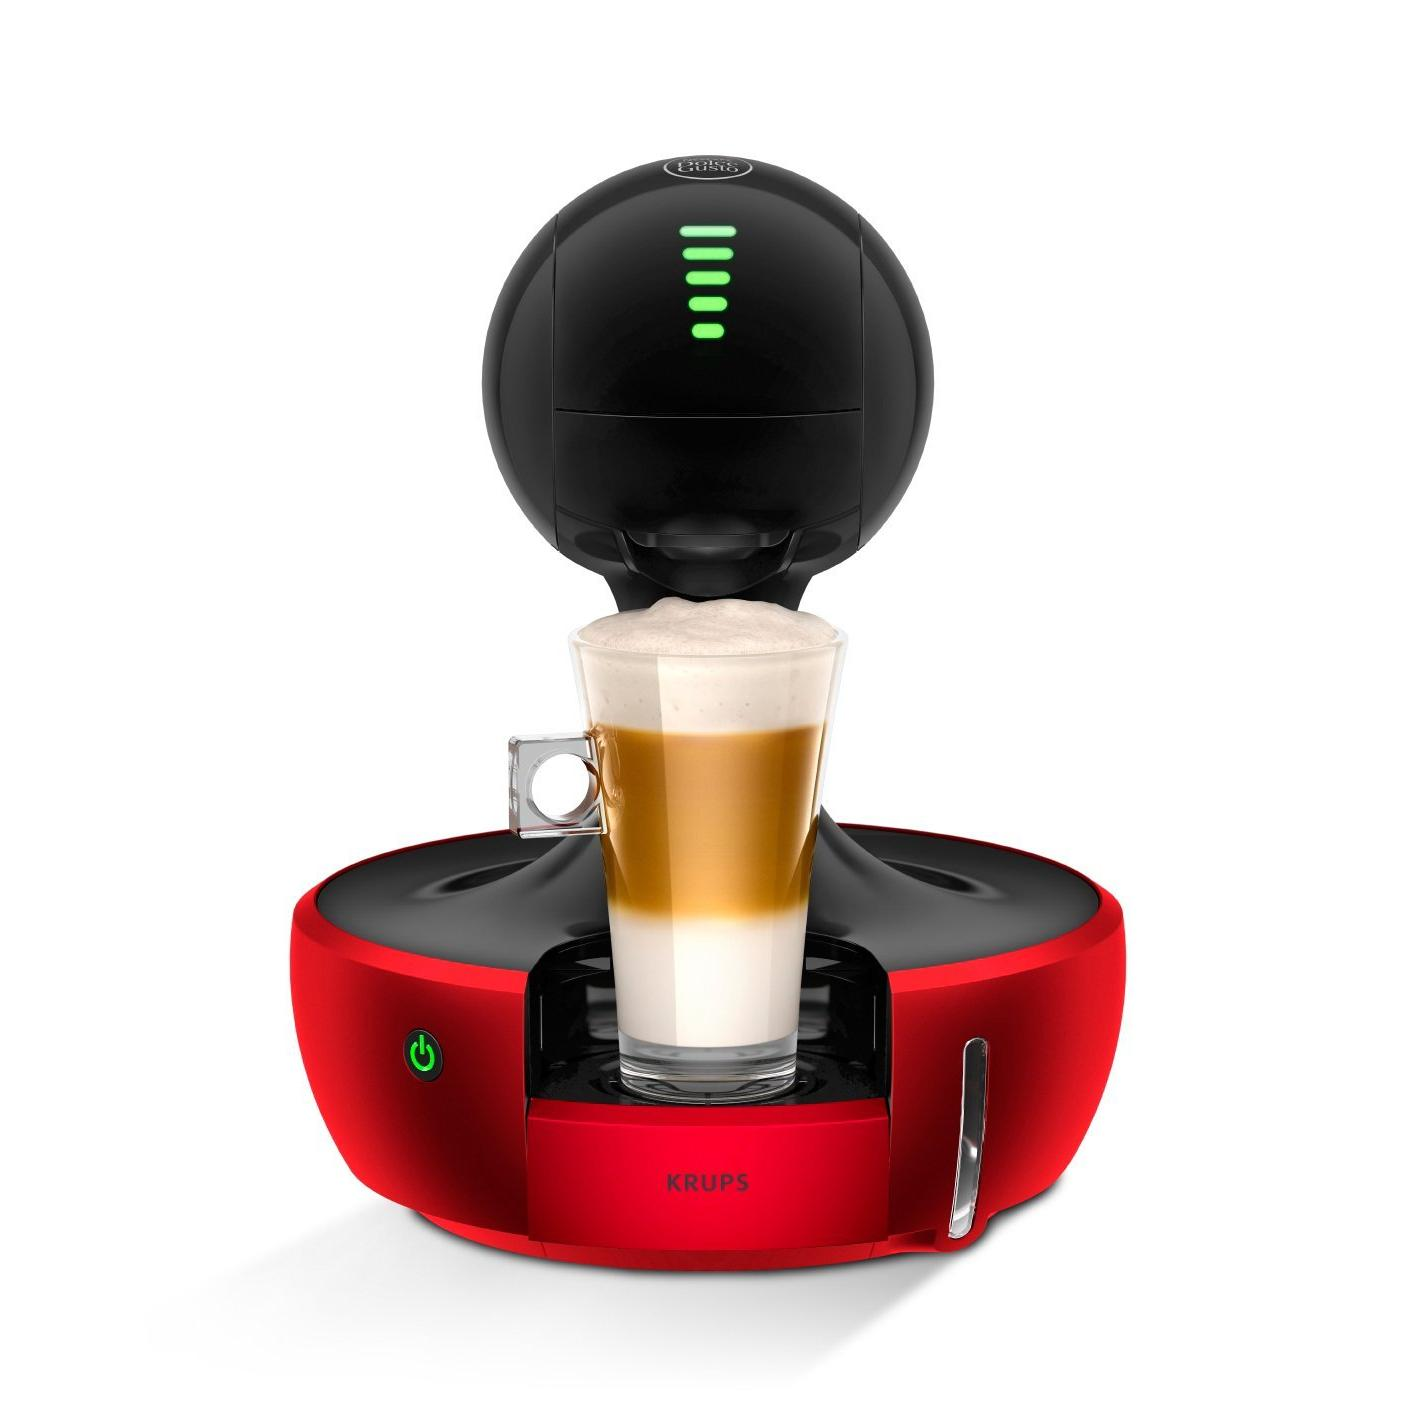 Krups - KP3505 - Machine à café Dolce gusto drop 15 bars